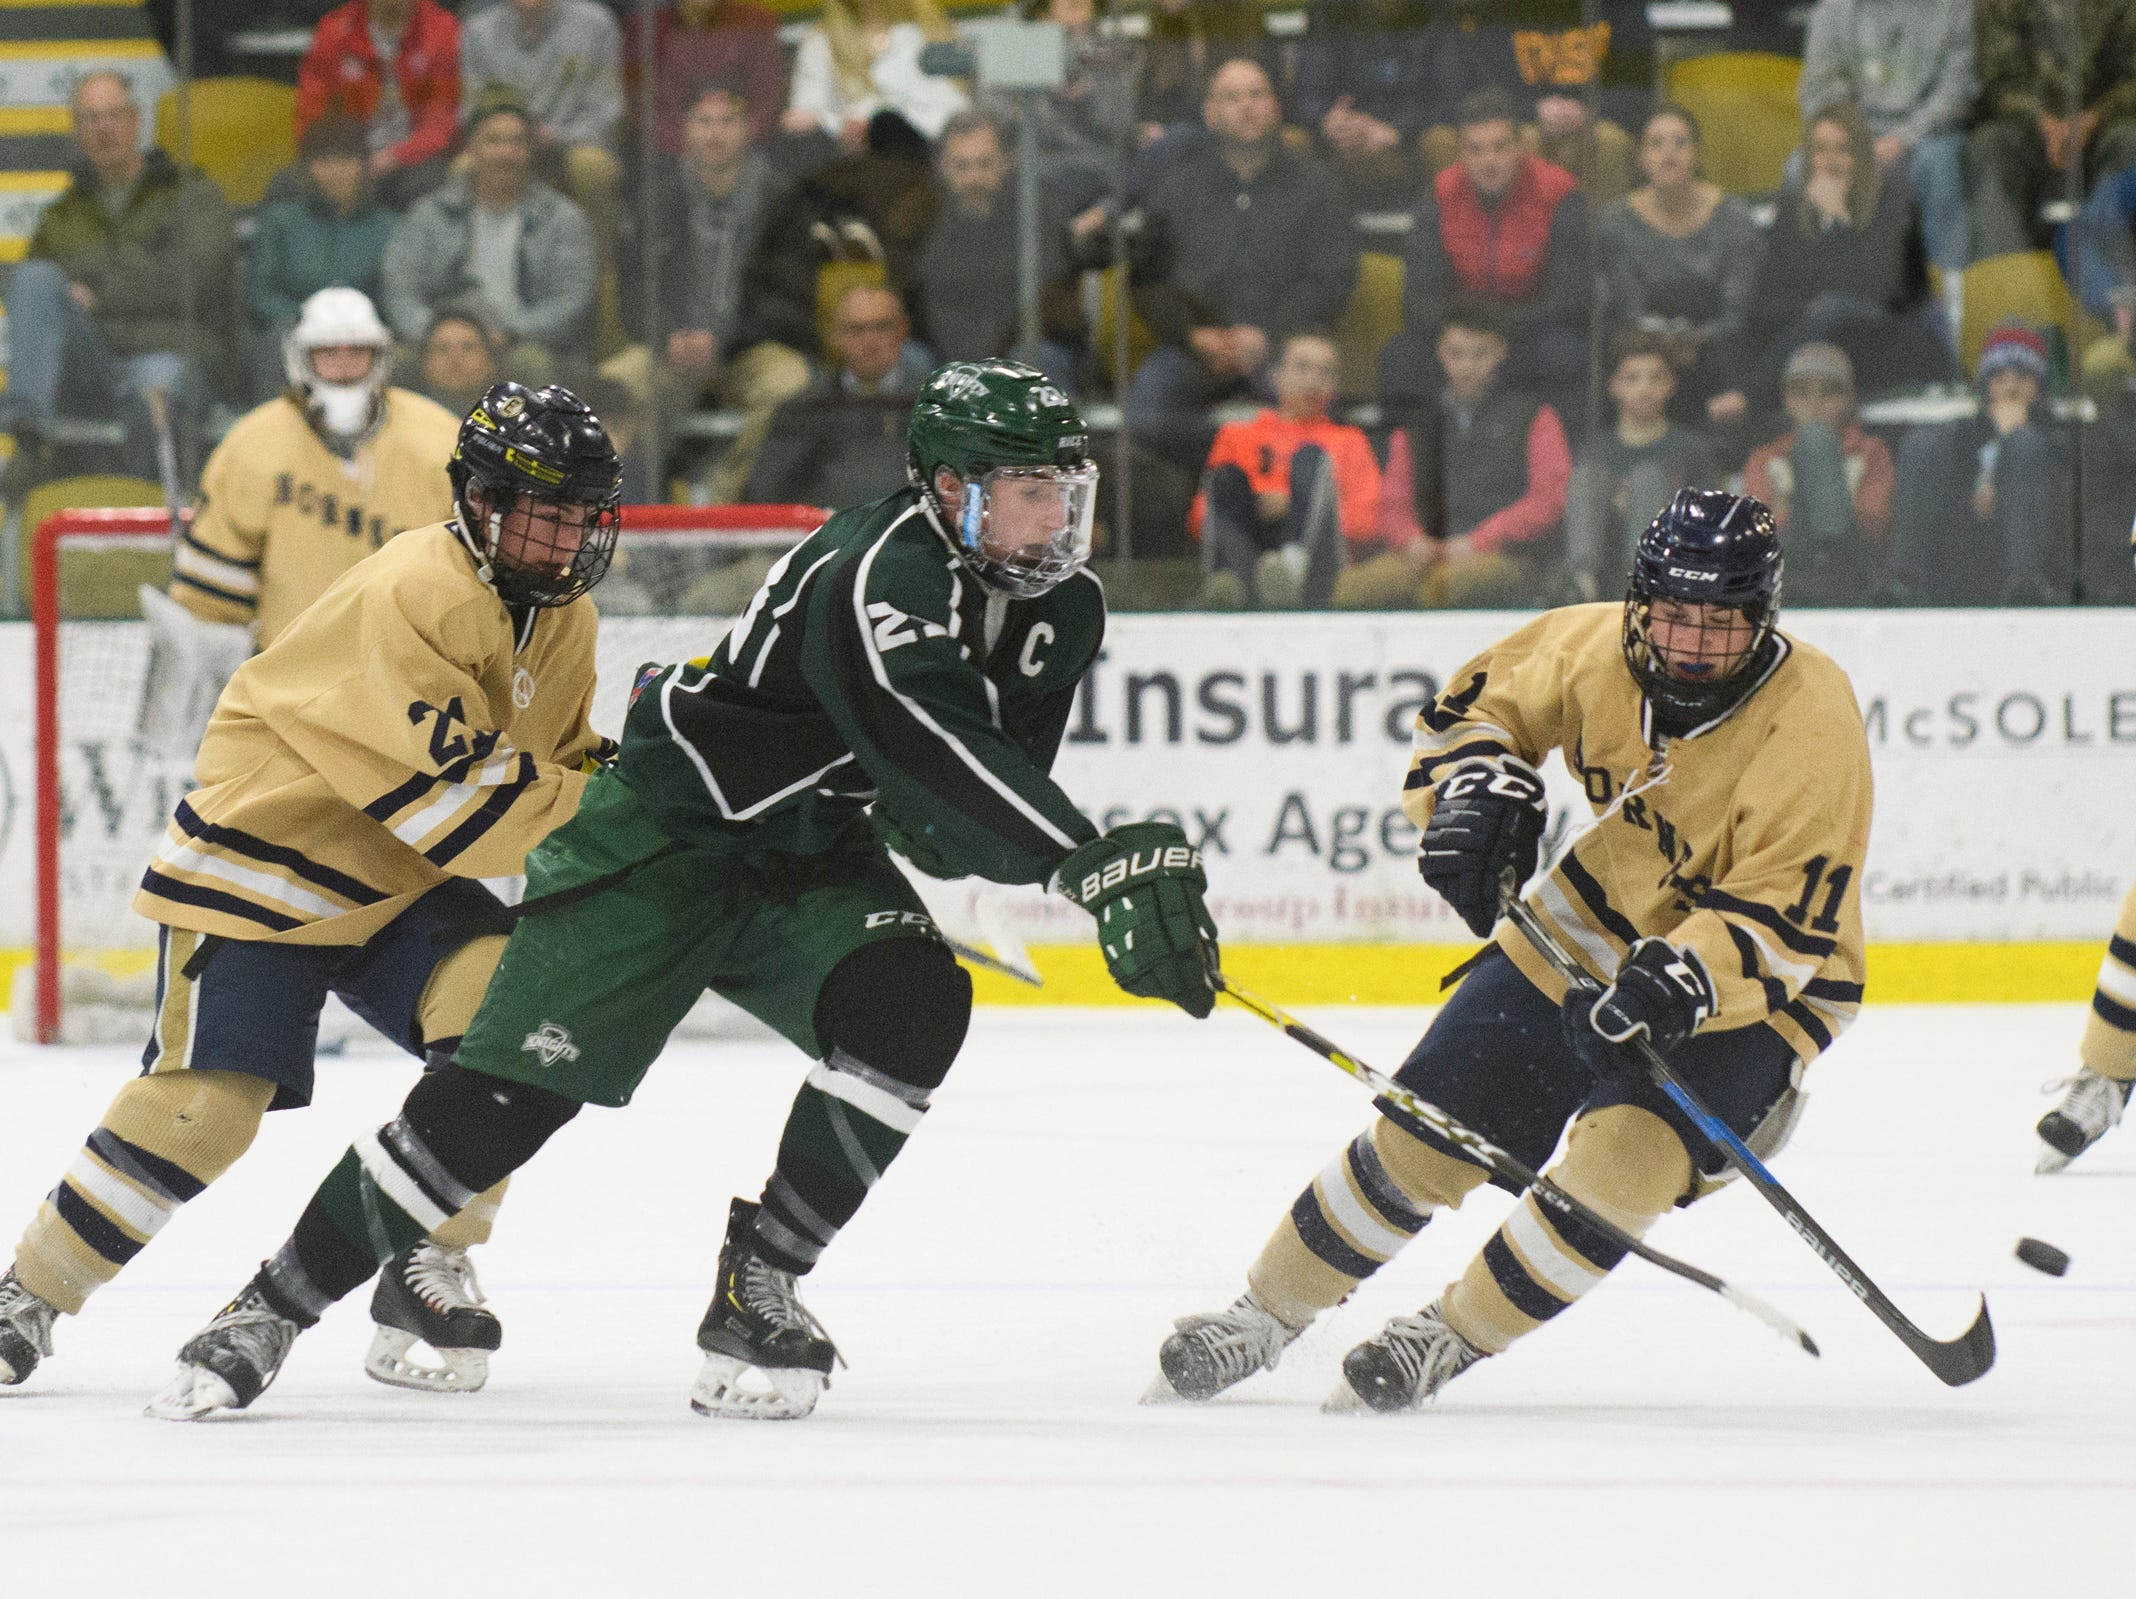 Rice's Reilly Hickey (23) battles for the puck with Essex's Ryan Clark (11) during the DI boys hockey championship game between the Rice Green Knights and the Essex Hornets at Gutterson Field House on Wednesday night March 13, 2019 in Burlington, Vermont.